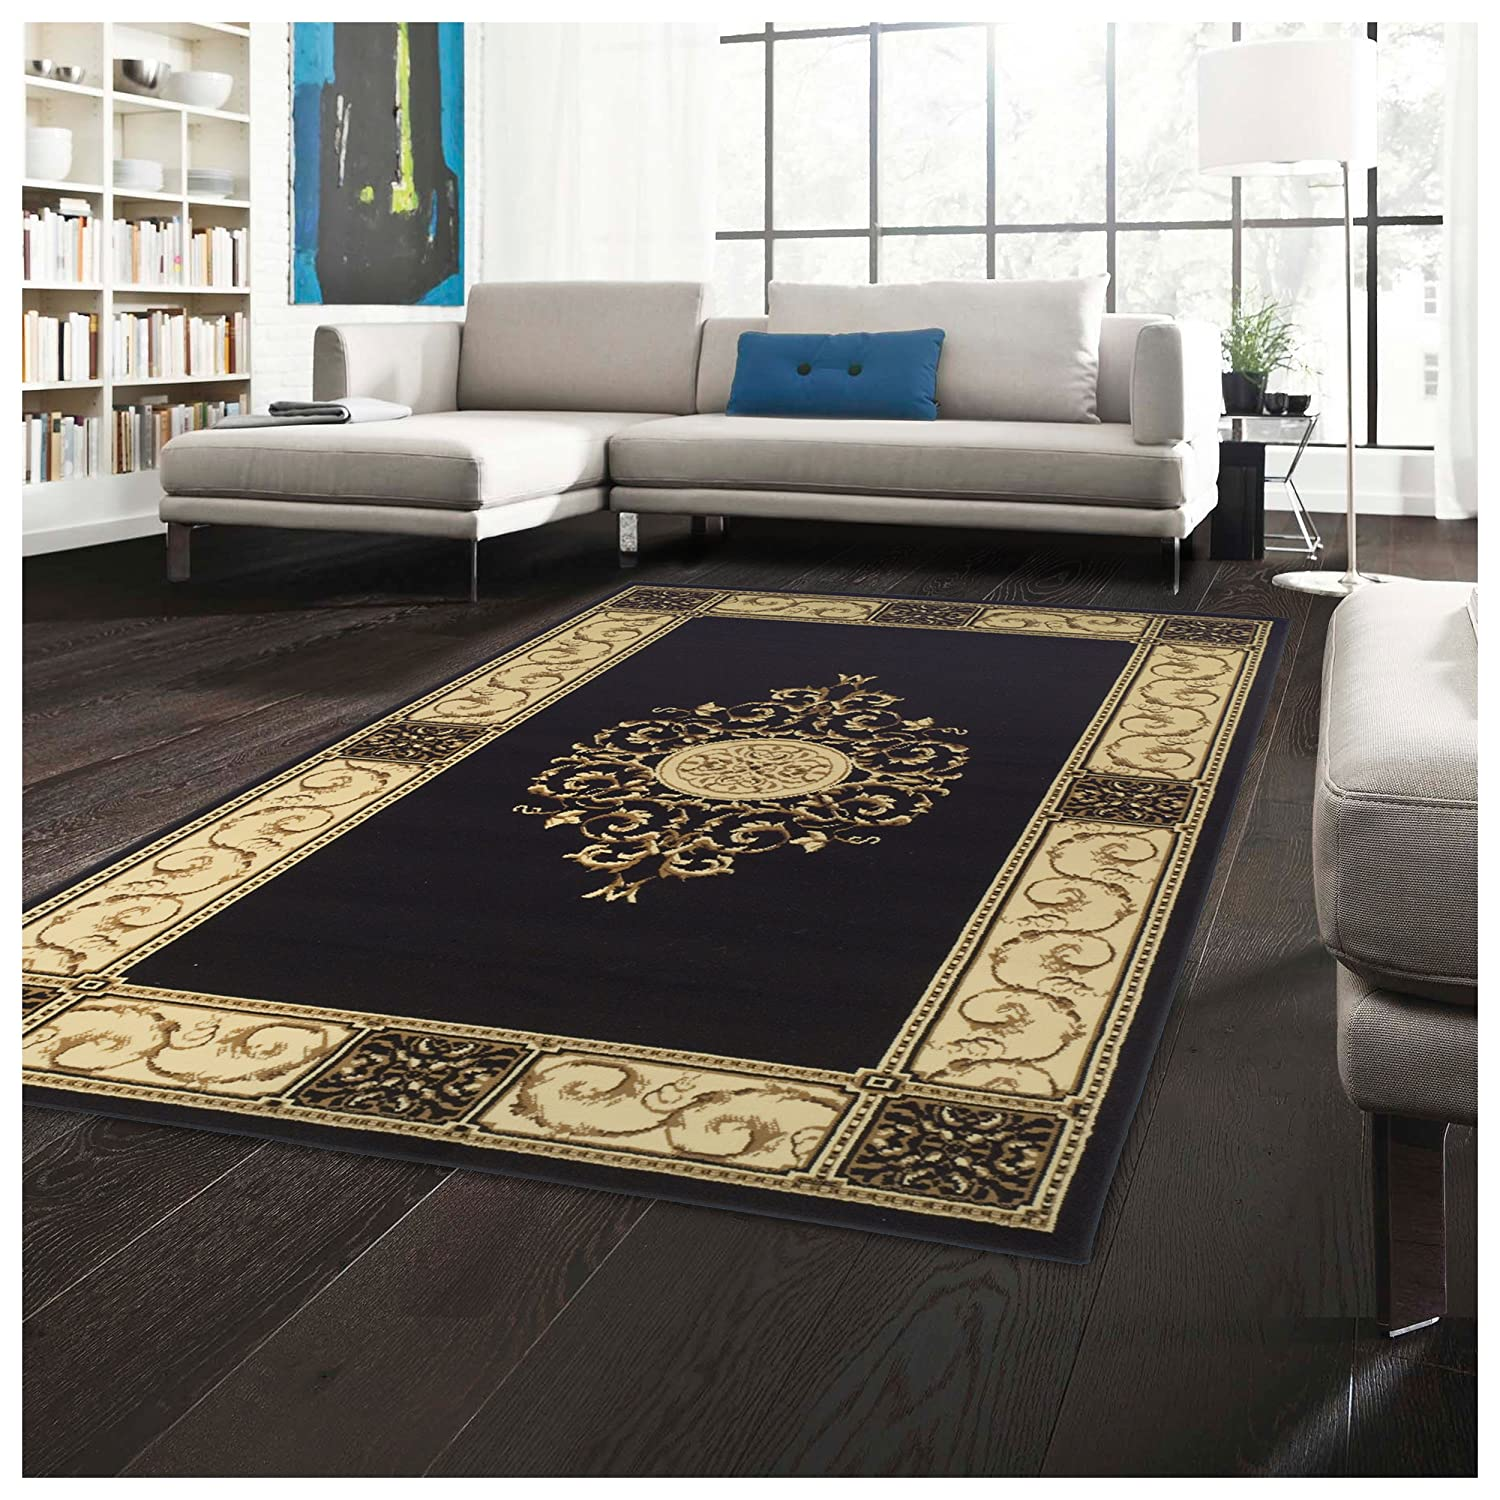 Superior Elegant Medallion Collection 2'7 x 8' Runner Rug, Attractive Rug Jute Backing, Durable Beautiful Woven Structure, Floral Medallion Rug Broad Border - Midnight Blue 2.6X8RUG-ELEGANT-MEDALLION-RP